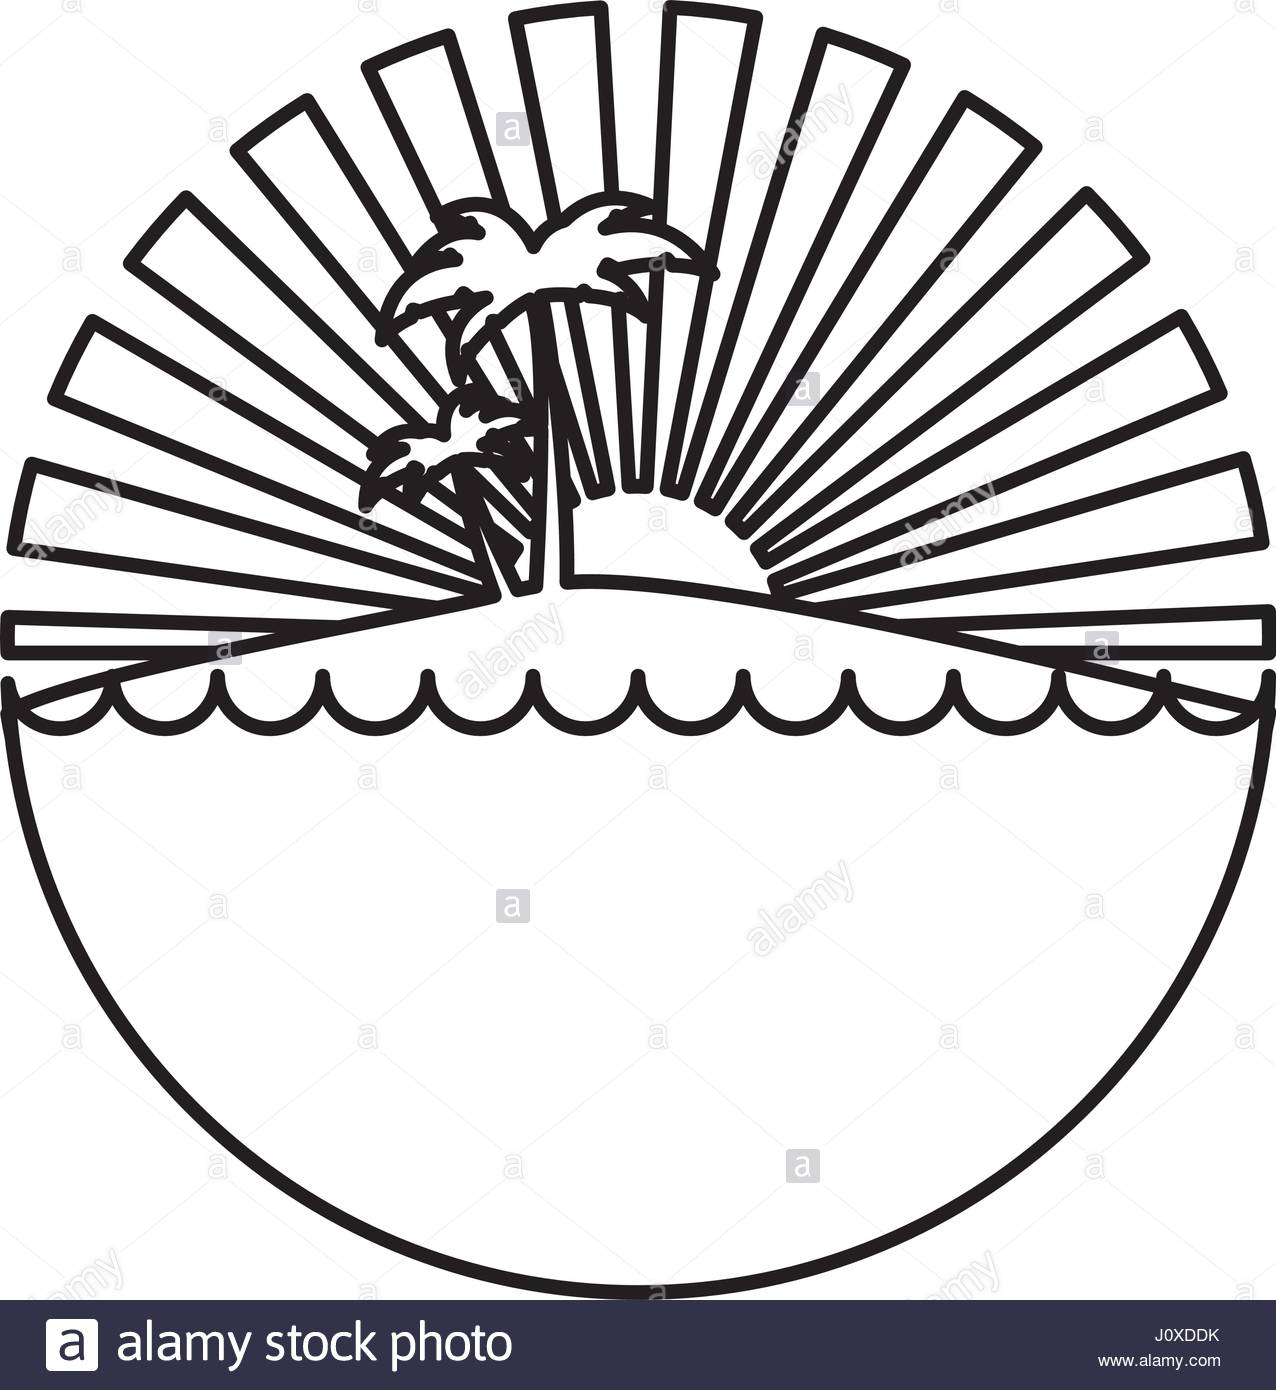 1276x1390 Silhouette Circular Background Sunset In The Ocean With Island